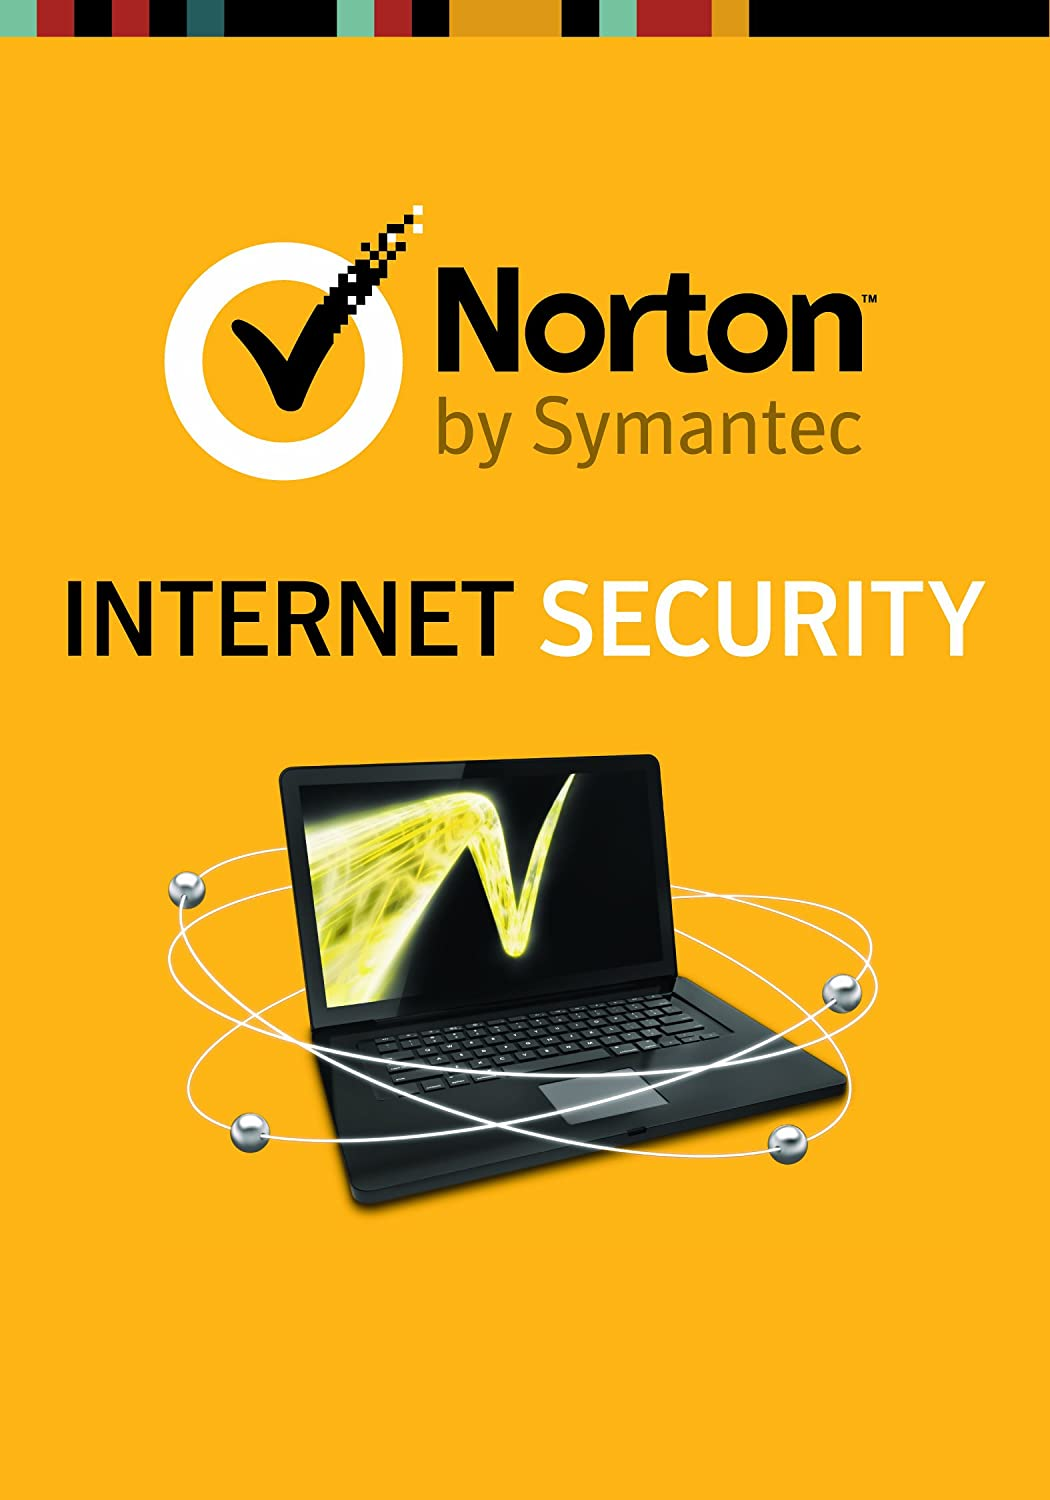 Norton internet security 3 pc 39 s 2017 2018 1year for The norton